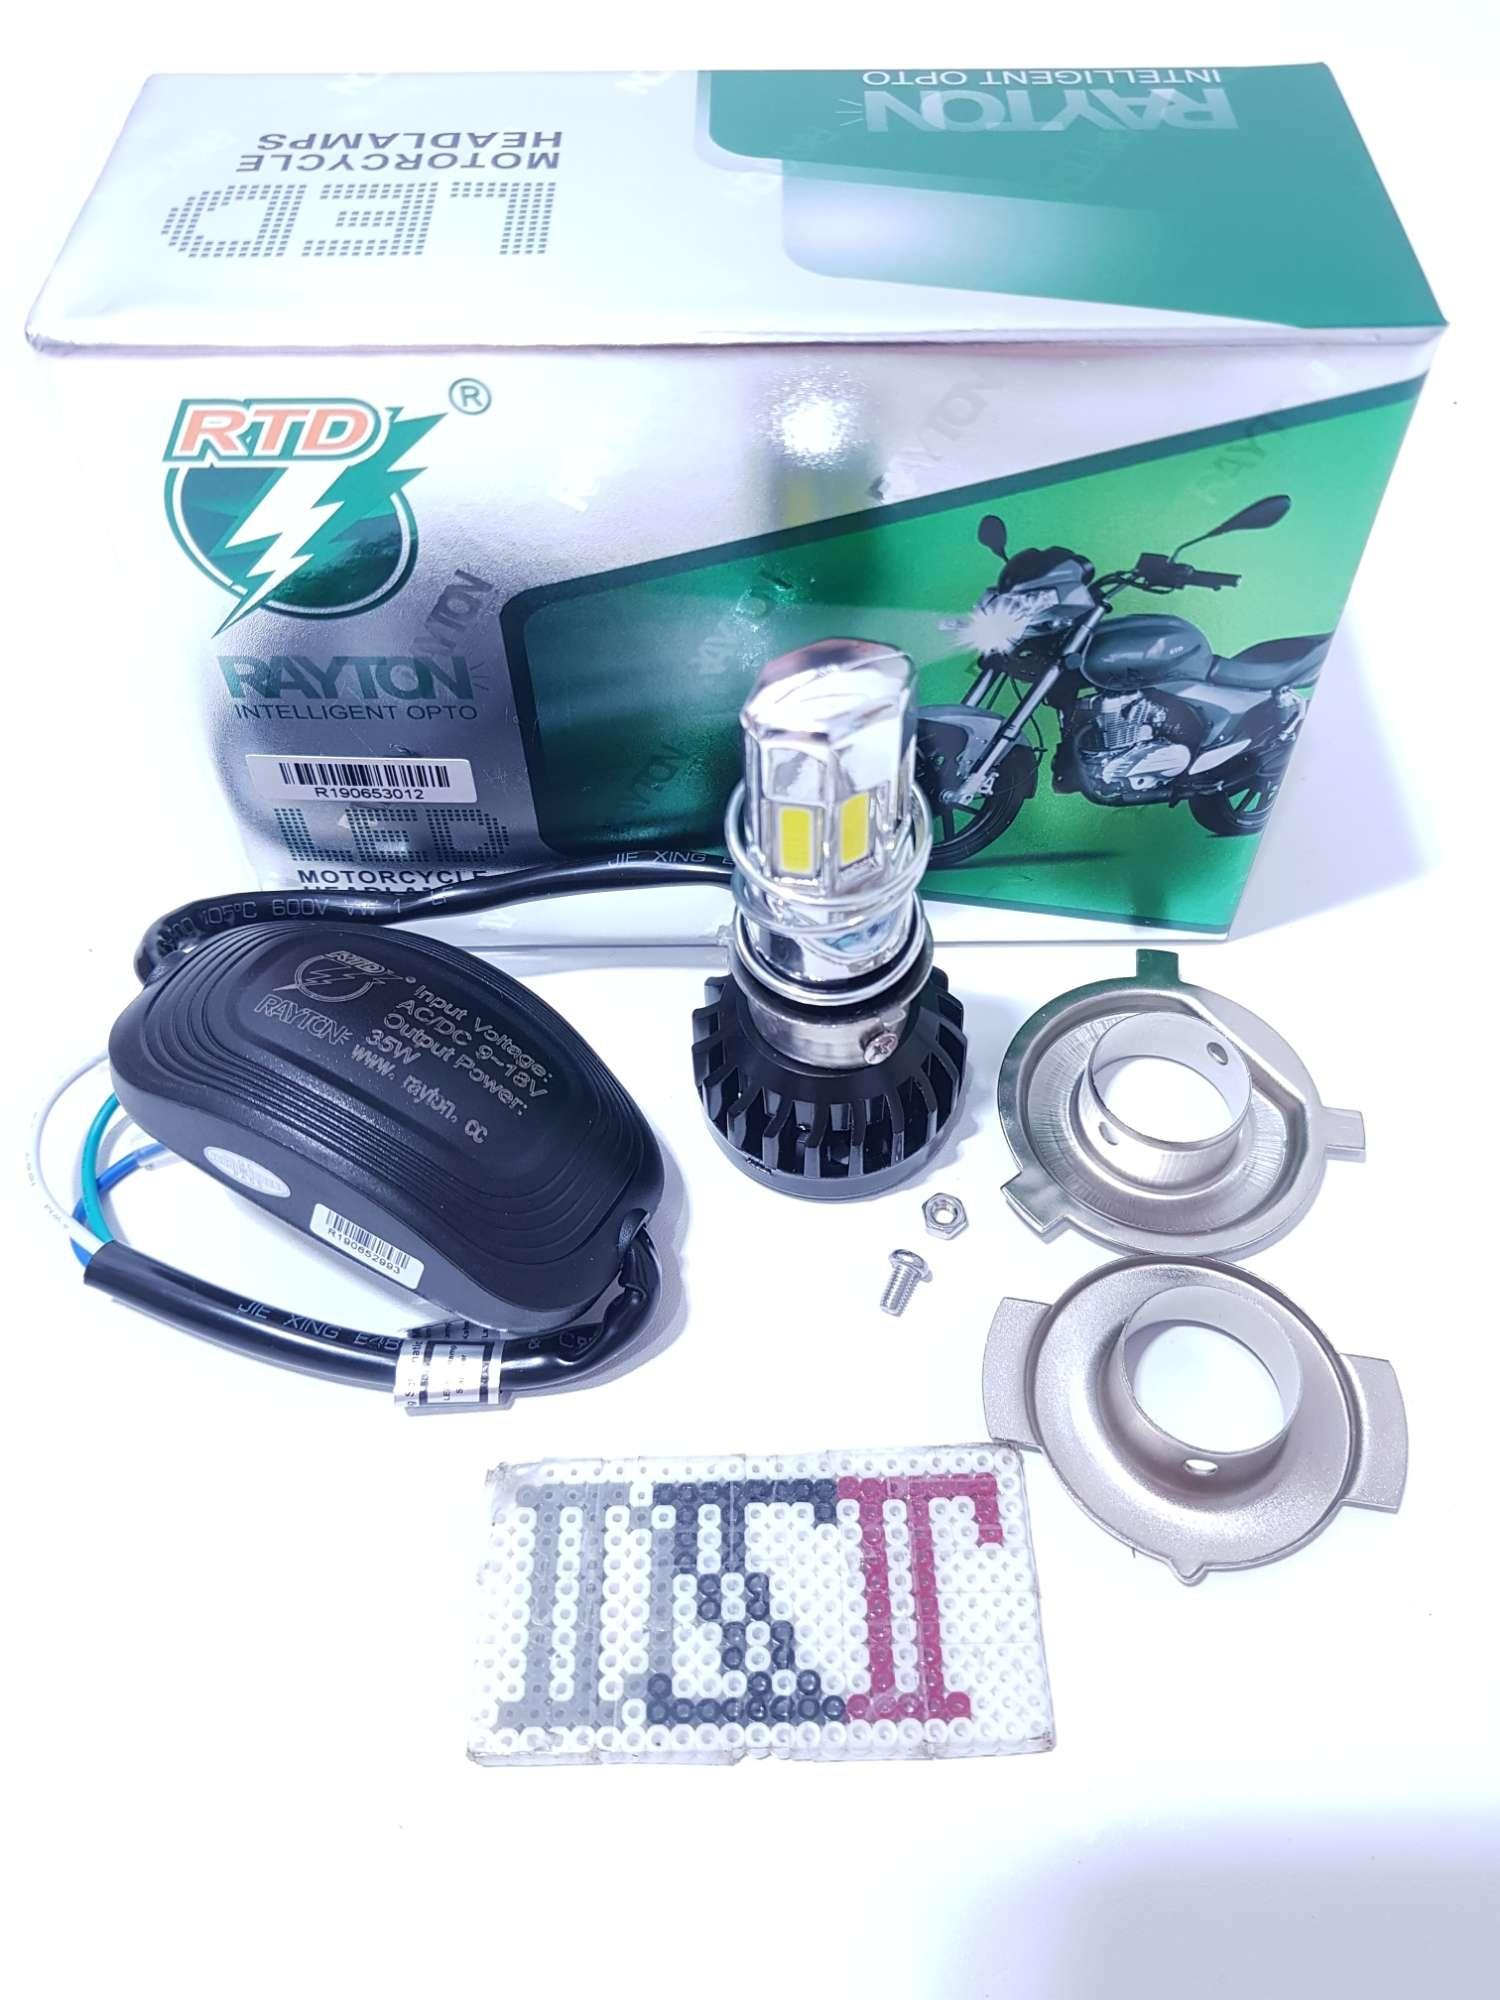 lampu utama led RTD 35 watt M 02E 6 sisi headlamp h6 h4 hs1 3500lm 6500K dzlled